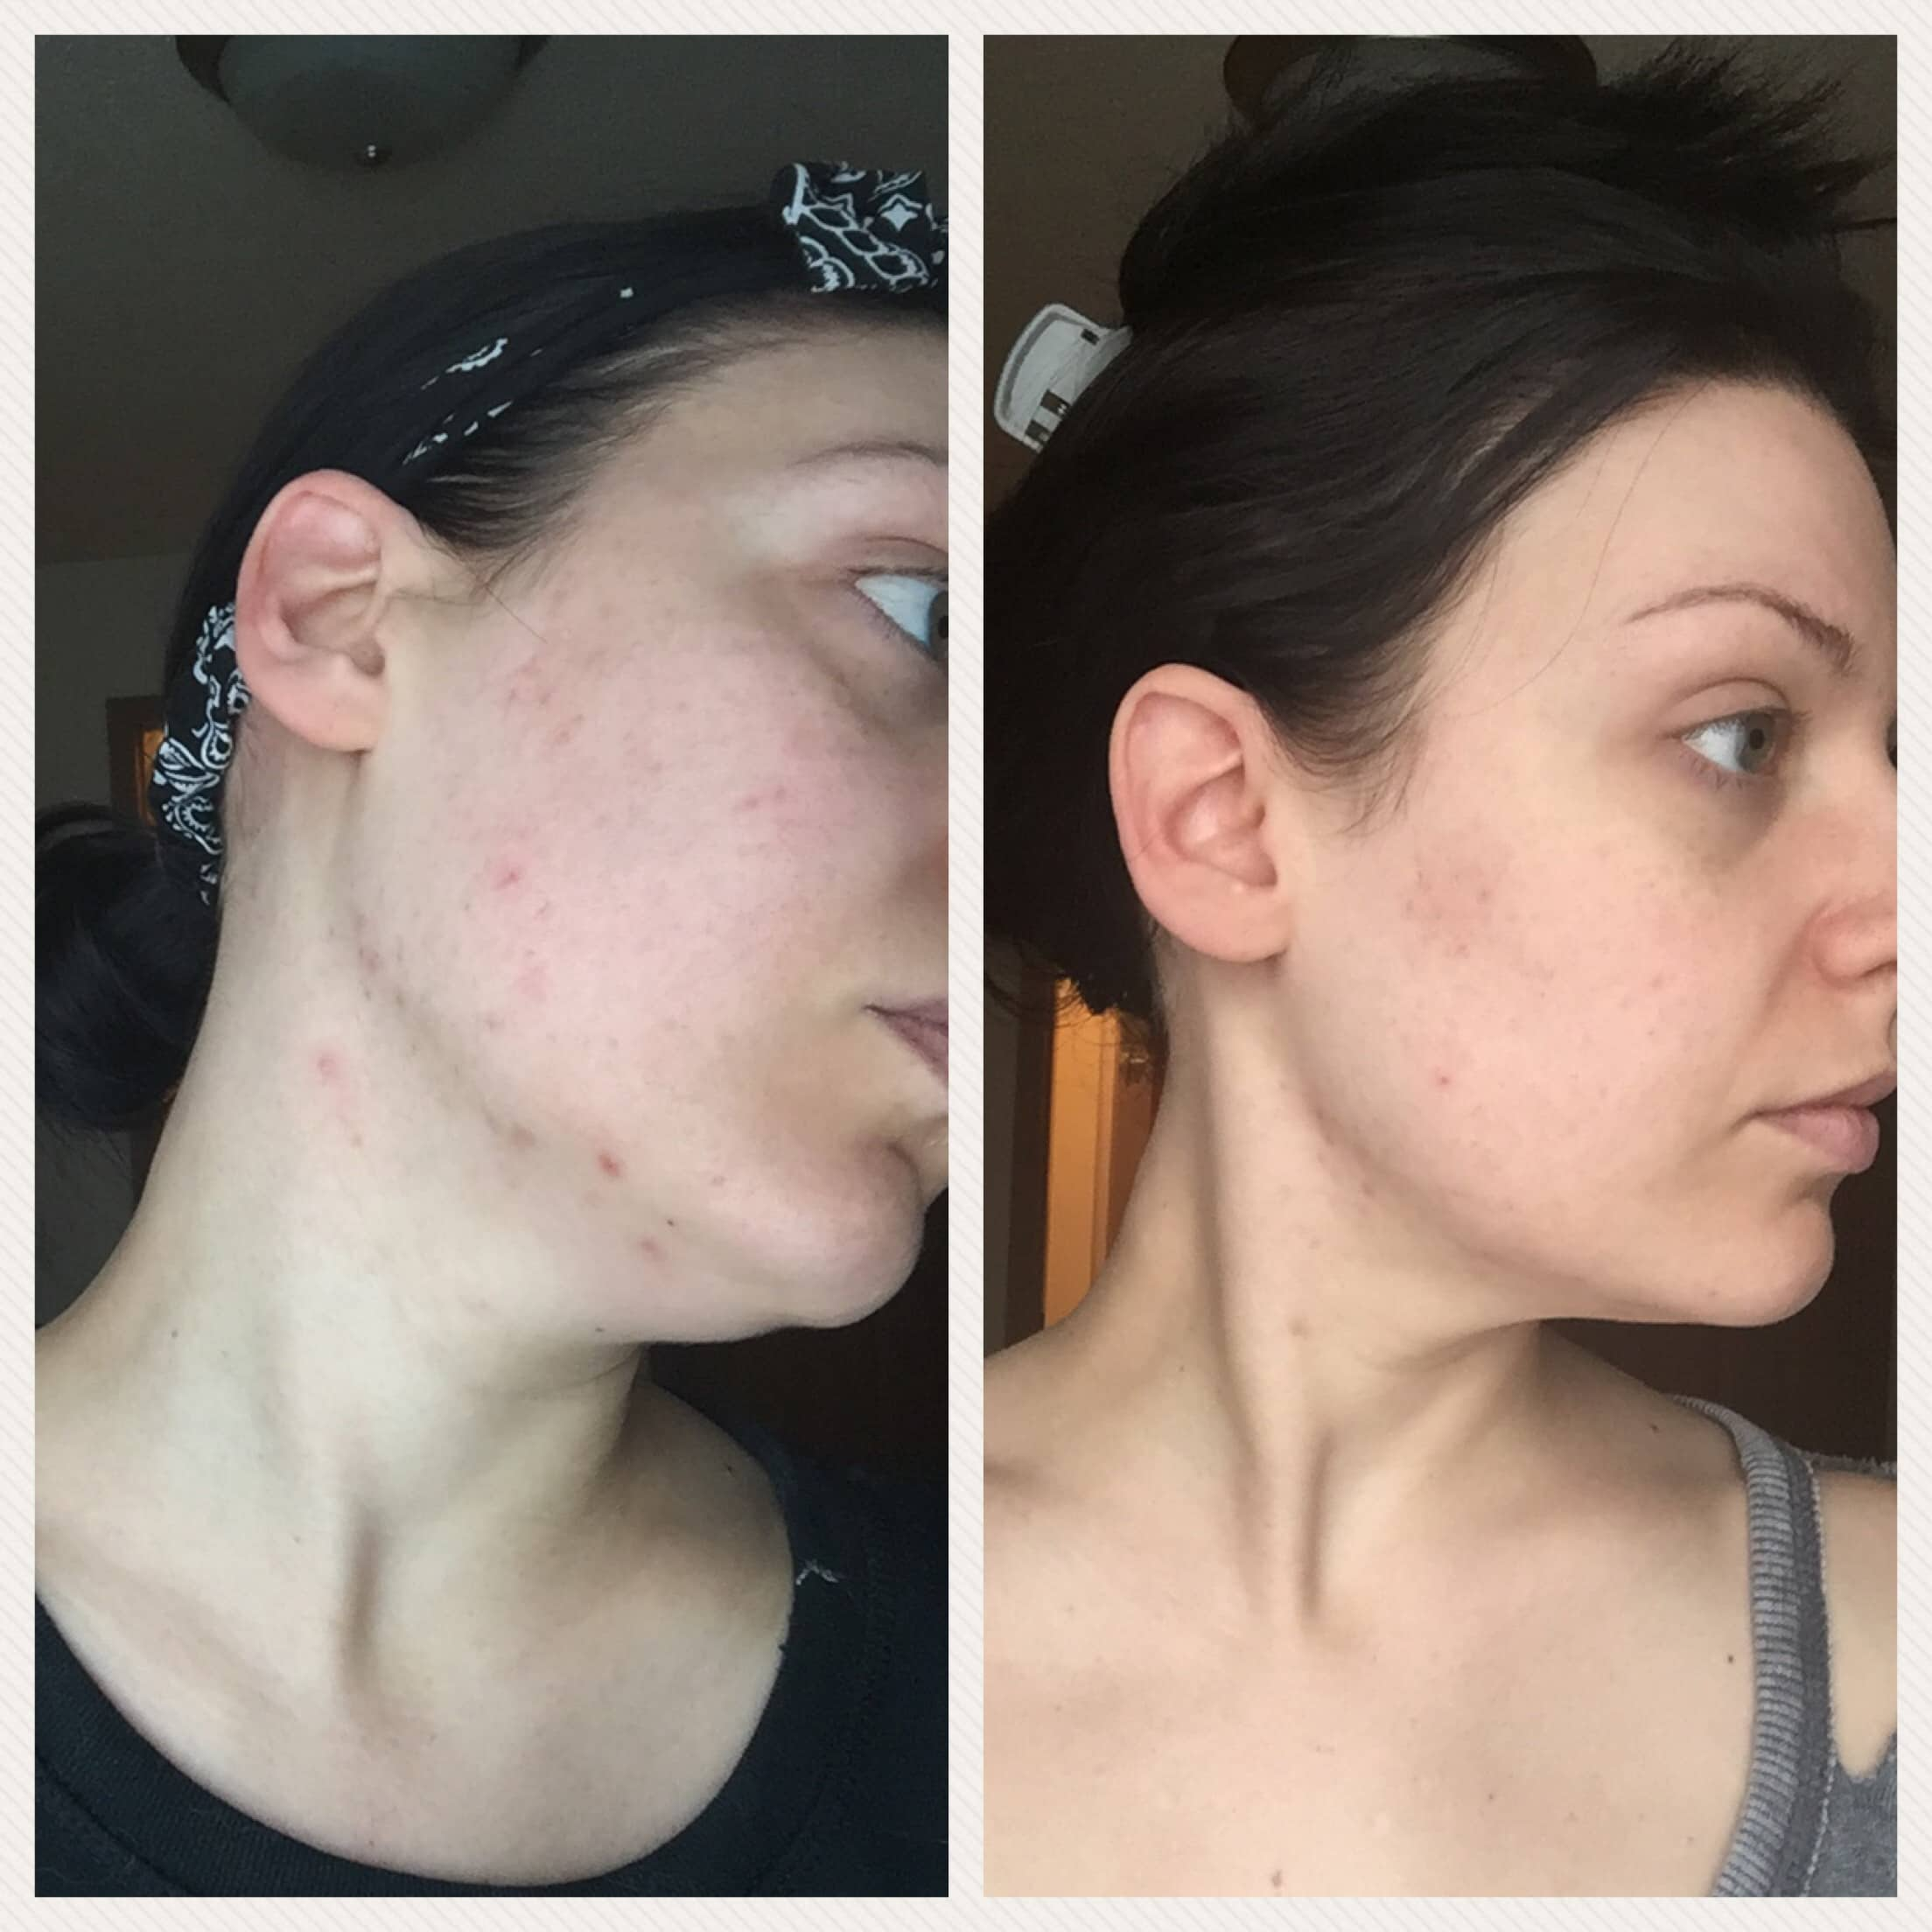 Is Curology the Cure for your Skin? | Curology Before & After 1 Month